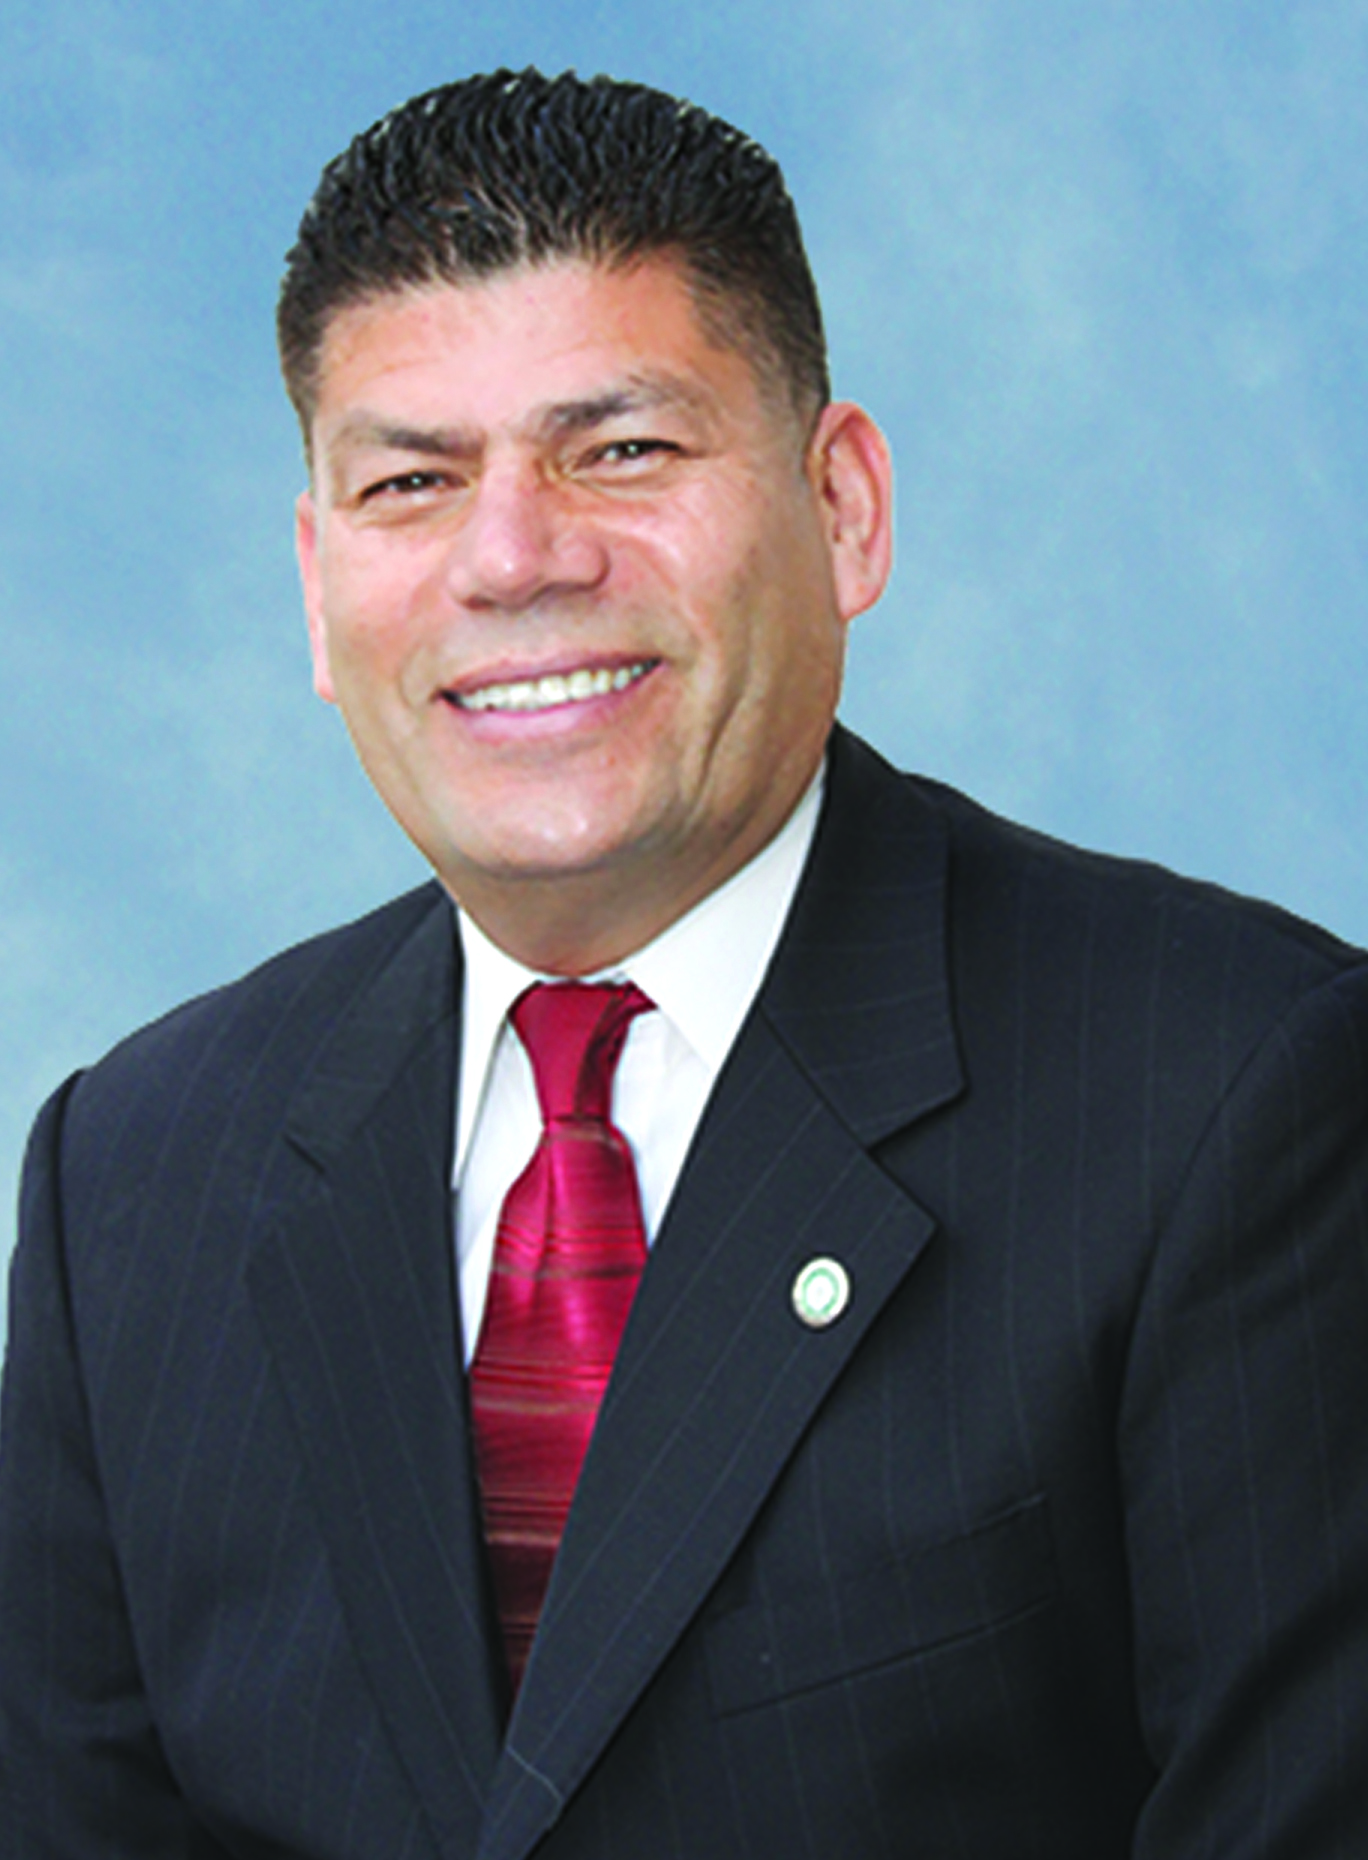 Commerce Councilman Argumedo Wins Lawsuit, Judge Slams